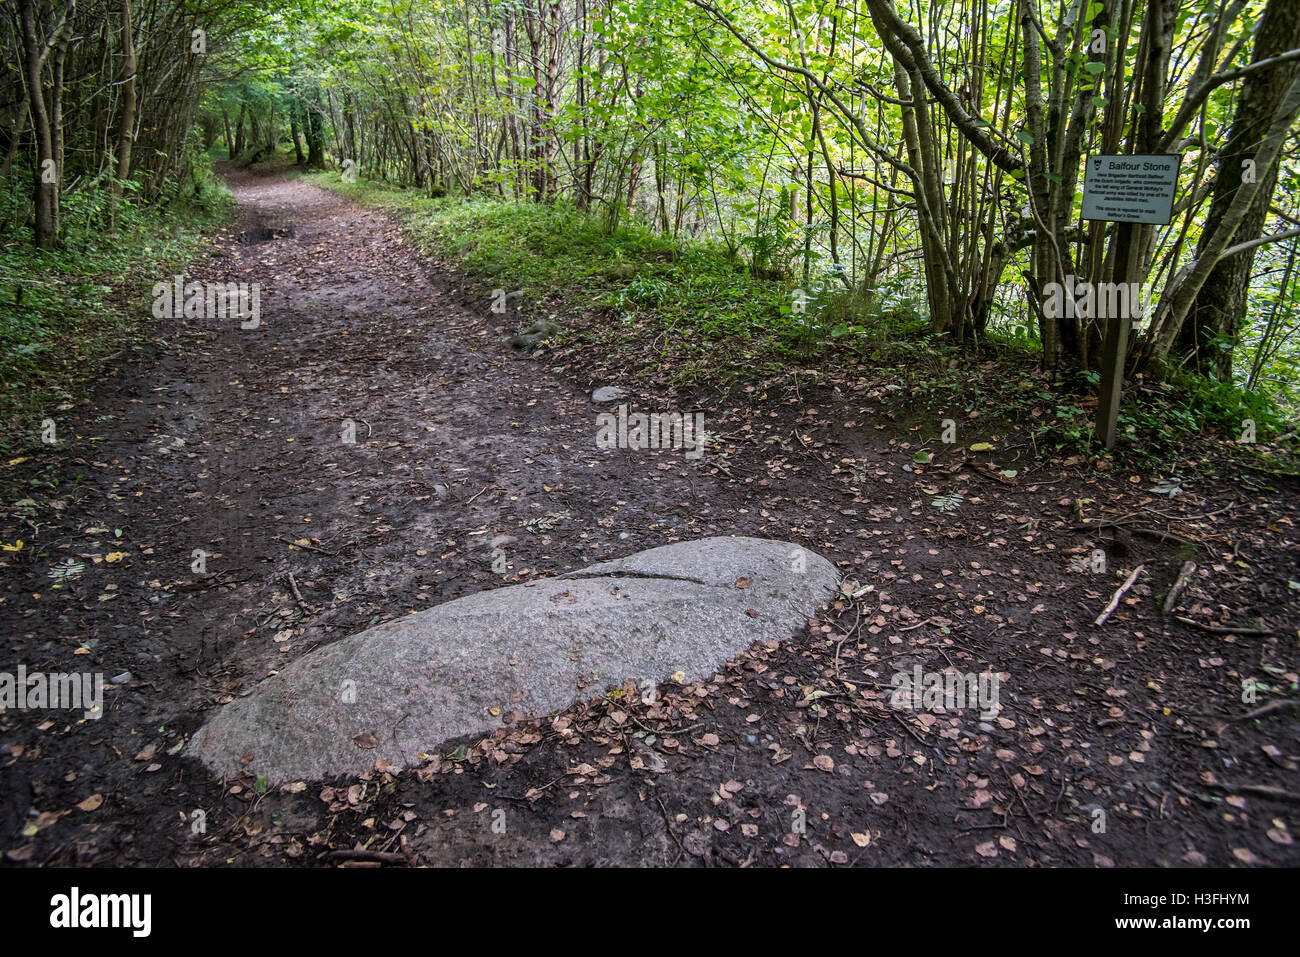 Balfour Stone marking the grave of Brigadier Barthold Balfour on path at the Pass of Killiecrankie in Glen Garry, - Stock Image